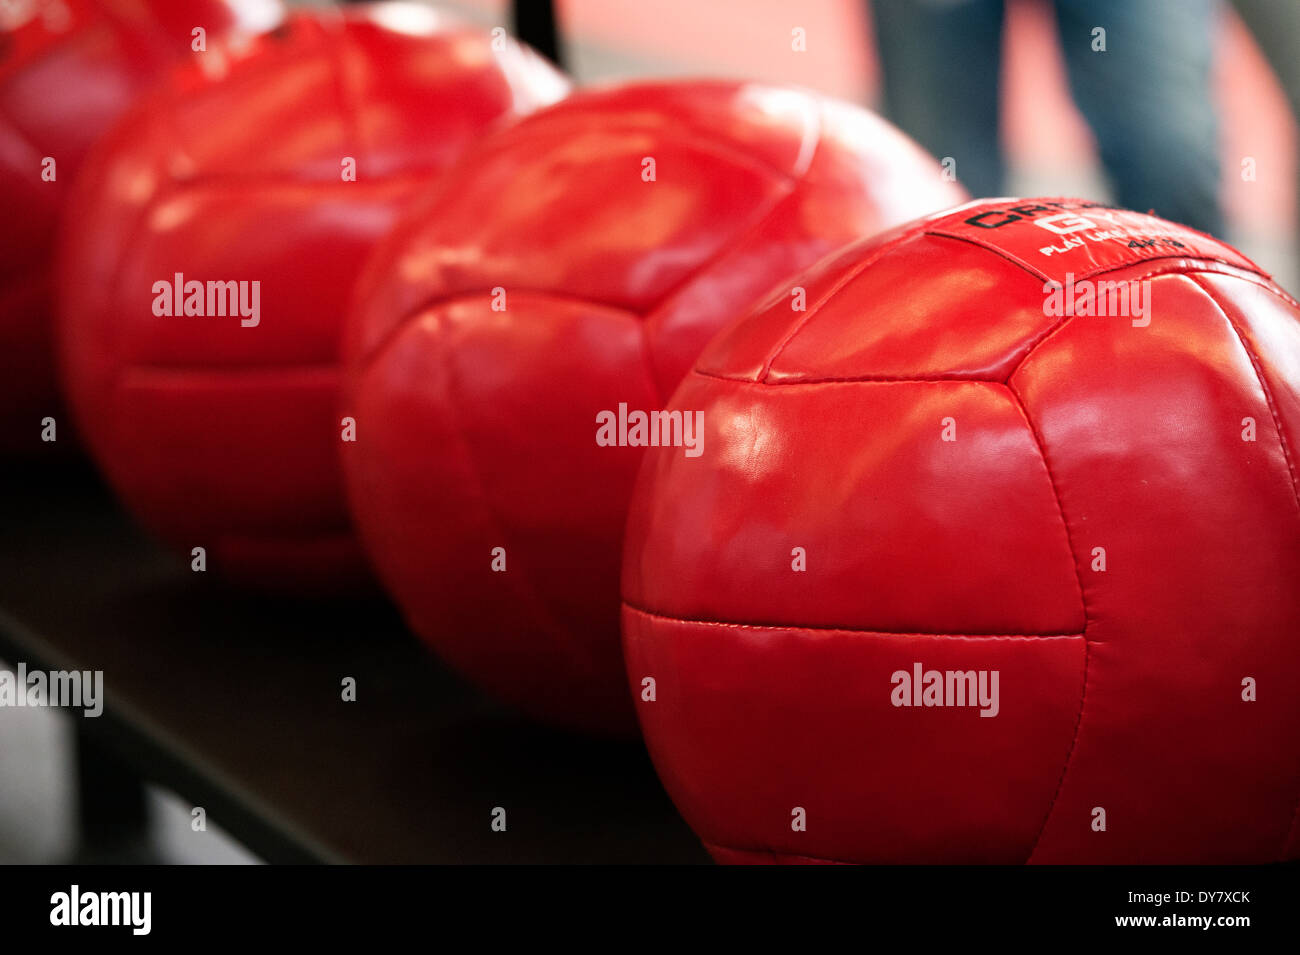 Red gymnastic balls on the fitness fair FIBO in Cologne, Germany, 2014. - Stock Image